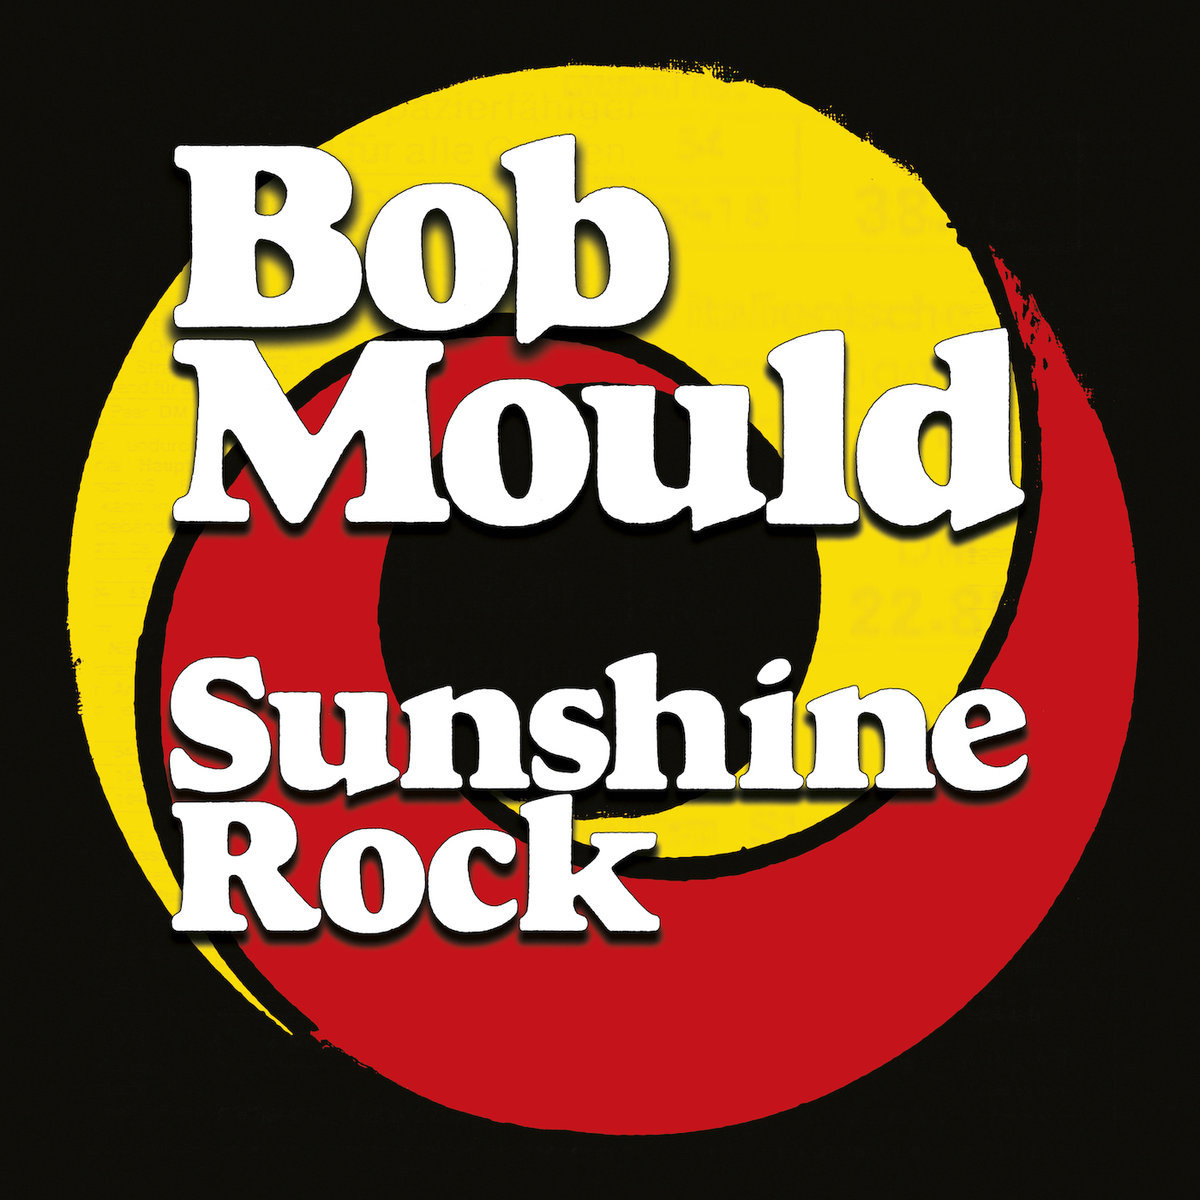 sunshine rock bob mould Bob Mould announces new album, Sunshine Rock, shares title track: Stream